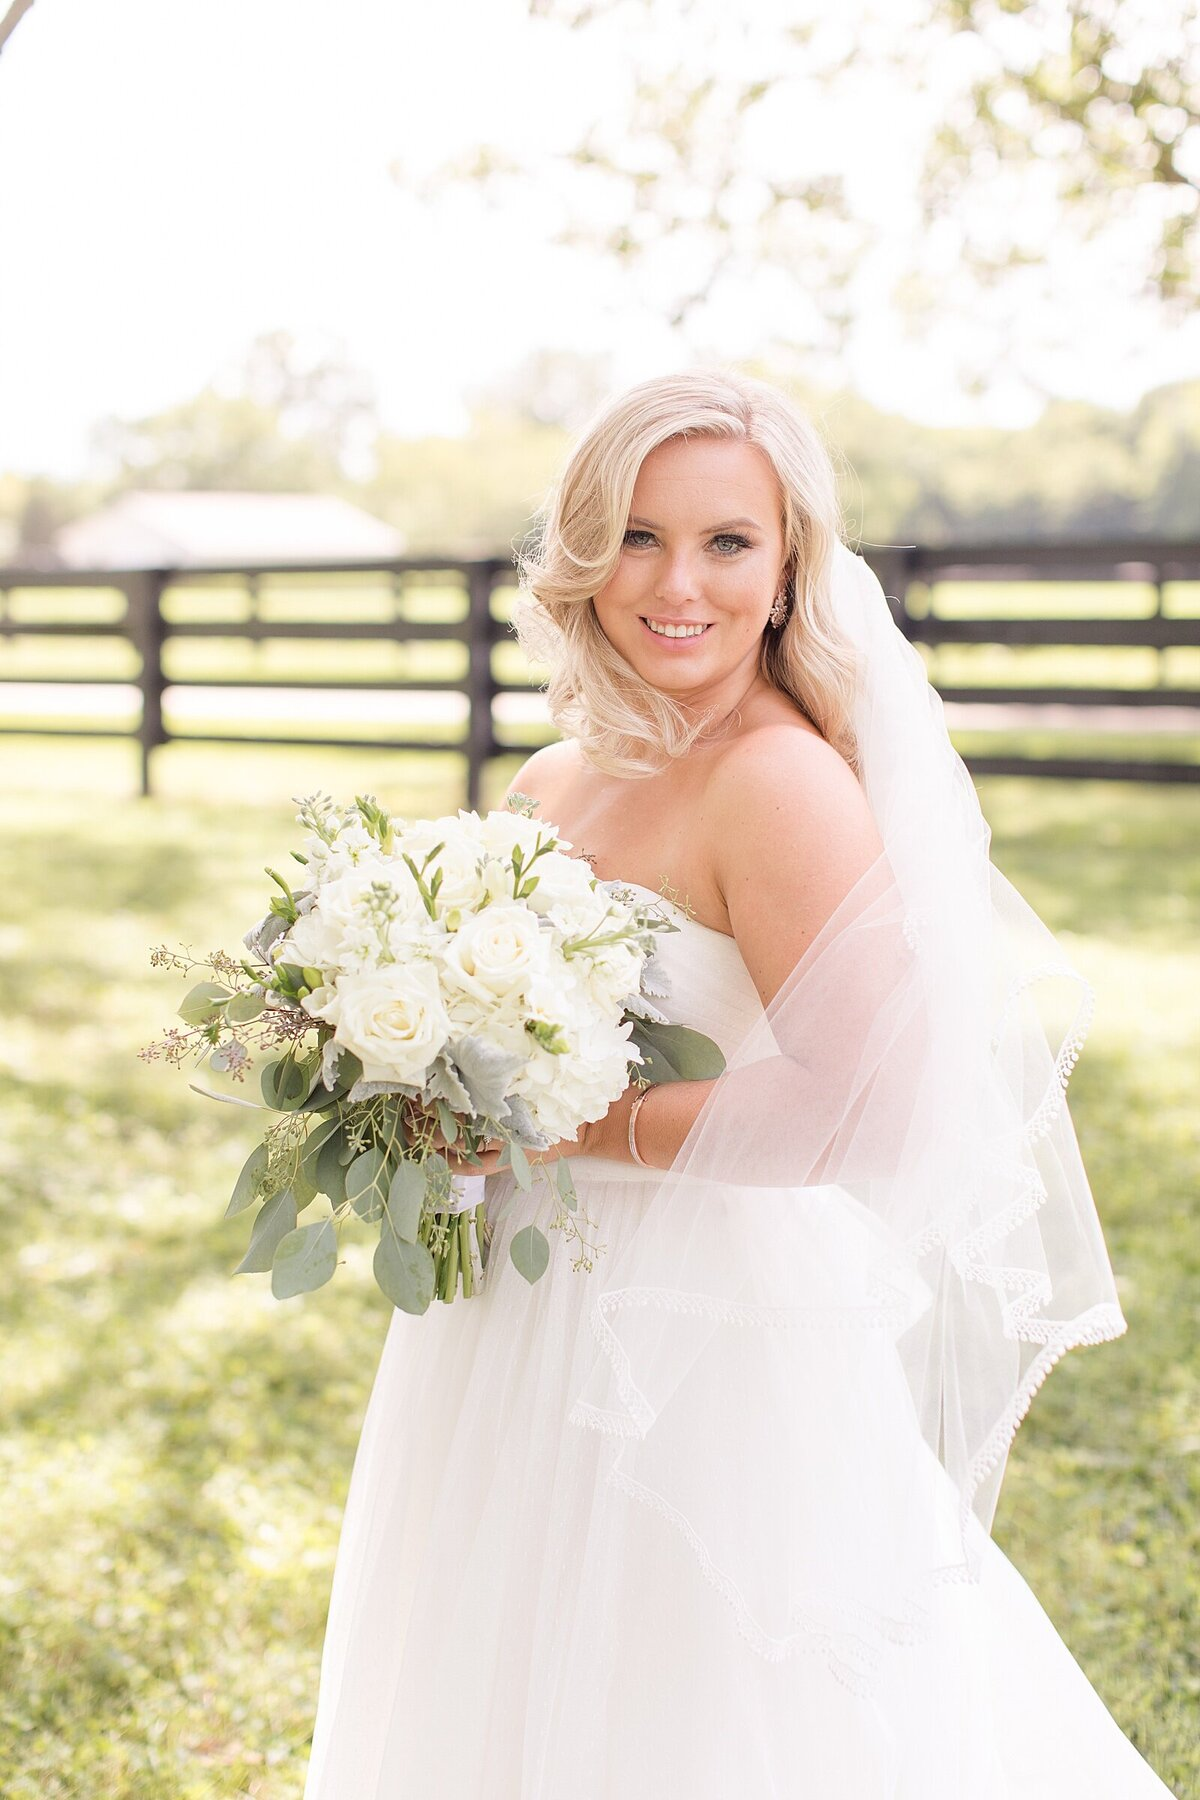 Kara Webster Photography | Mac & Maggie | Bradshaw-Duncan House Louisville, KY Wedding Photographer_0045